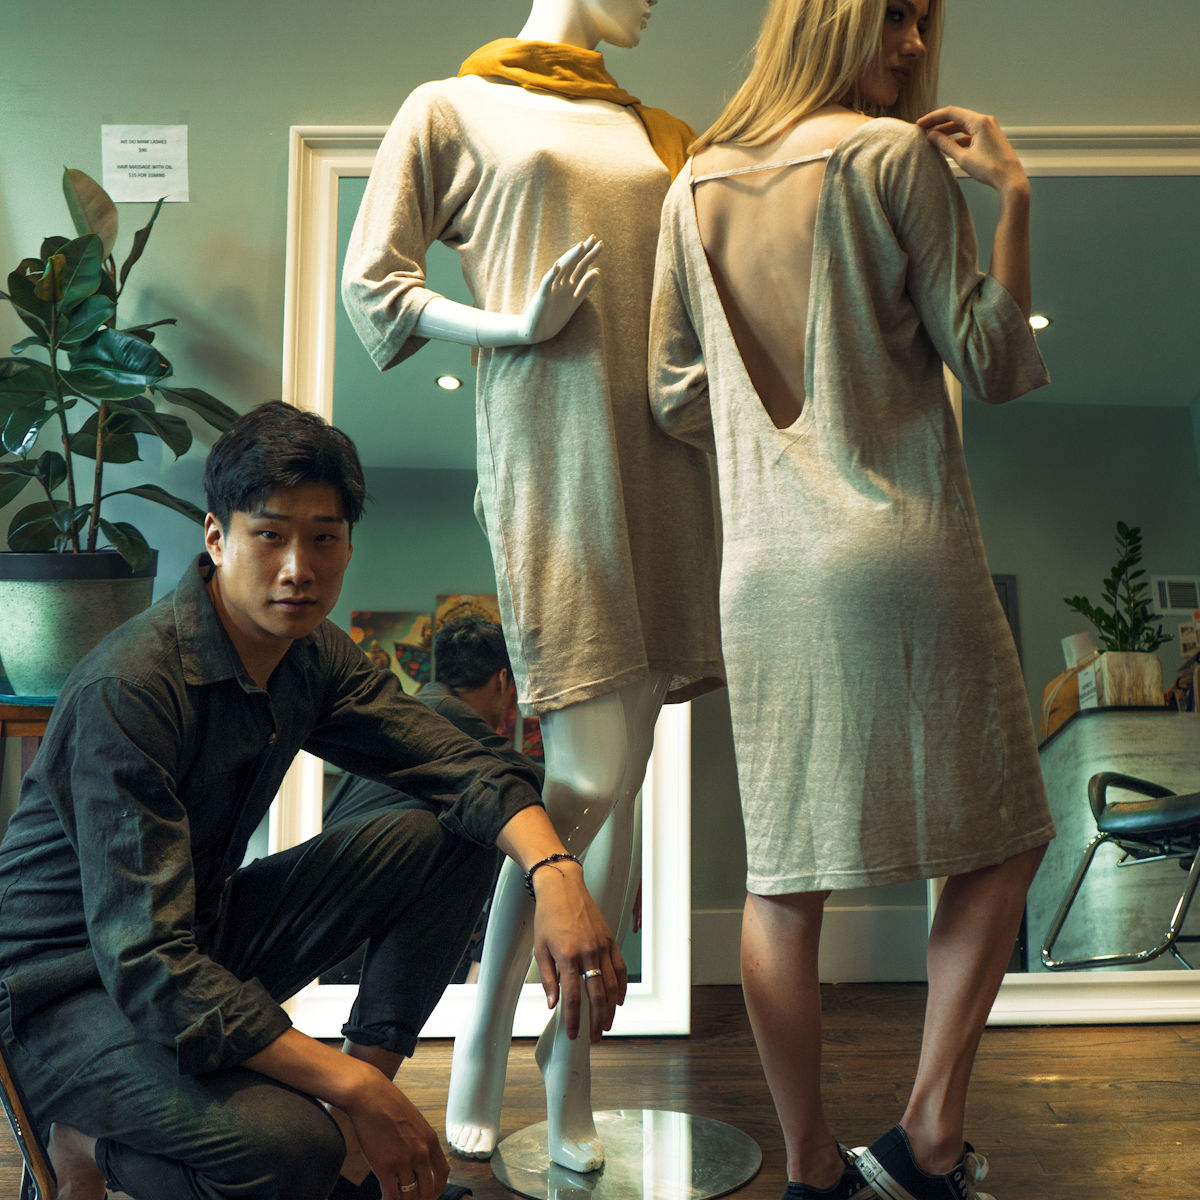 Stemp - Styled from Hemp - Evolution Mine is proud to introduce Stemp (Styled from Hemp) clothing from bustling Kathmandu, Nepal all the way to cool Brooklyn. At Stemp they believe in bringing hemp fashion to people not just as an alternative but also as a trendy wear. That works for us. Let's call it